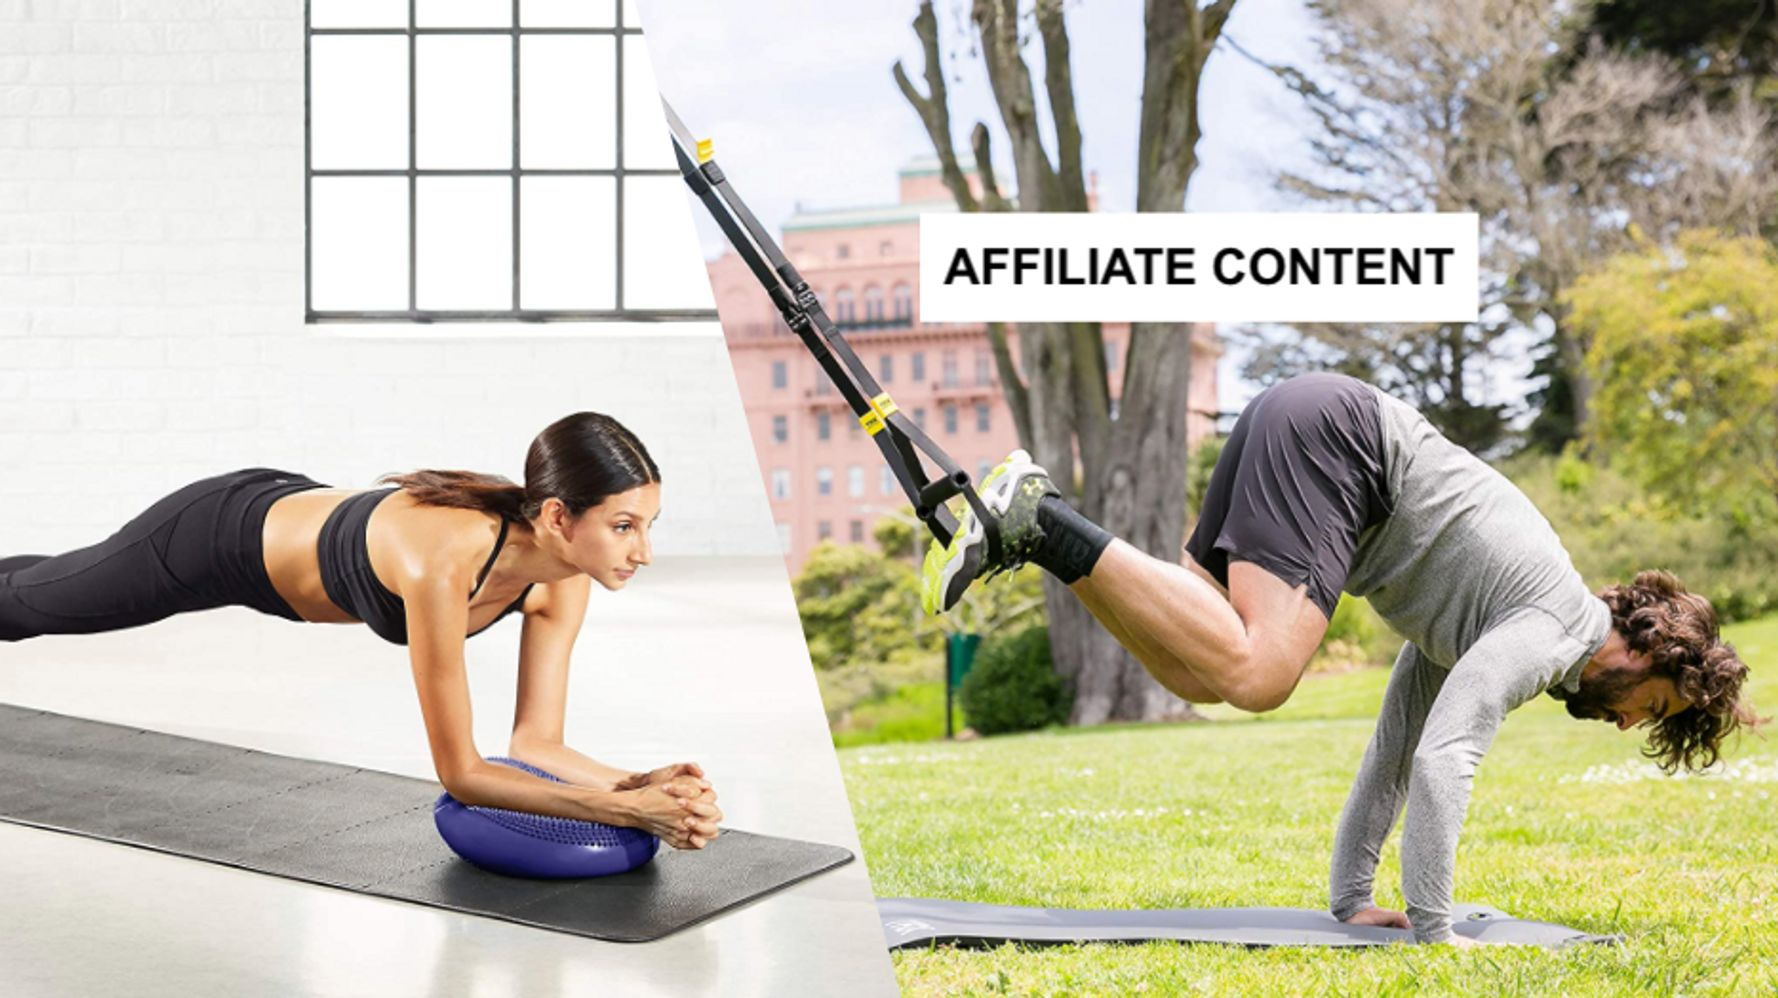 18 Fitness Equipment Deals On Amazon To Get You Pumped